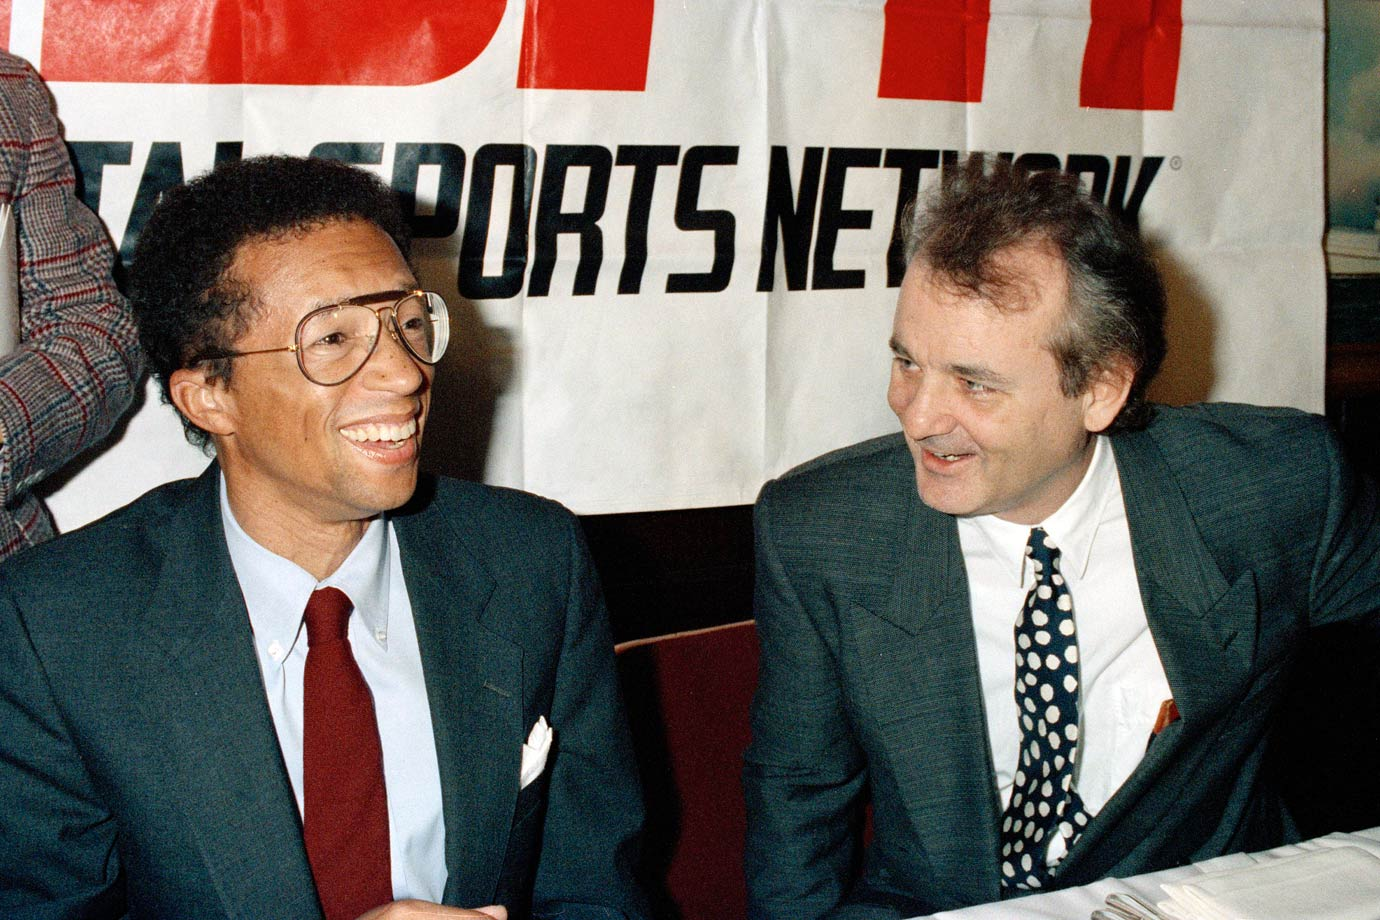 Arthur Ashe and Bill Murray share a laugh prior to a news conference announcing the formation of the ESPY Awards, with some of the proceeds going to the Arthur Ashe Foundation, on Dec. 15, 1992 in New York City.